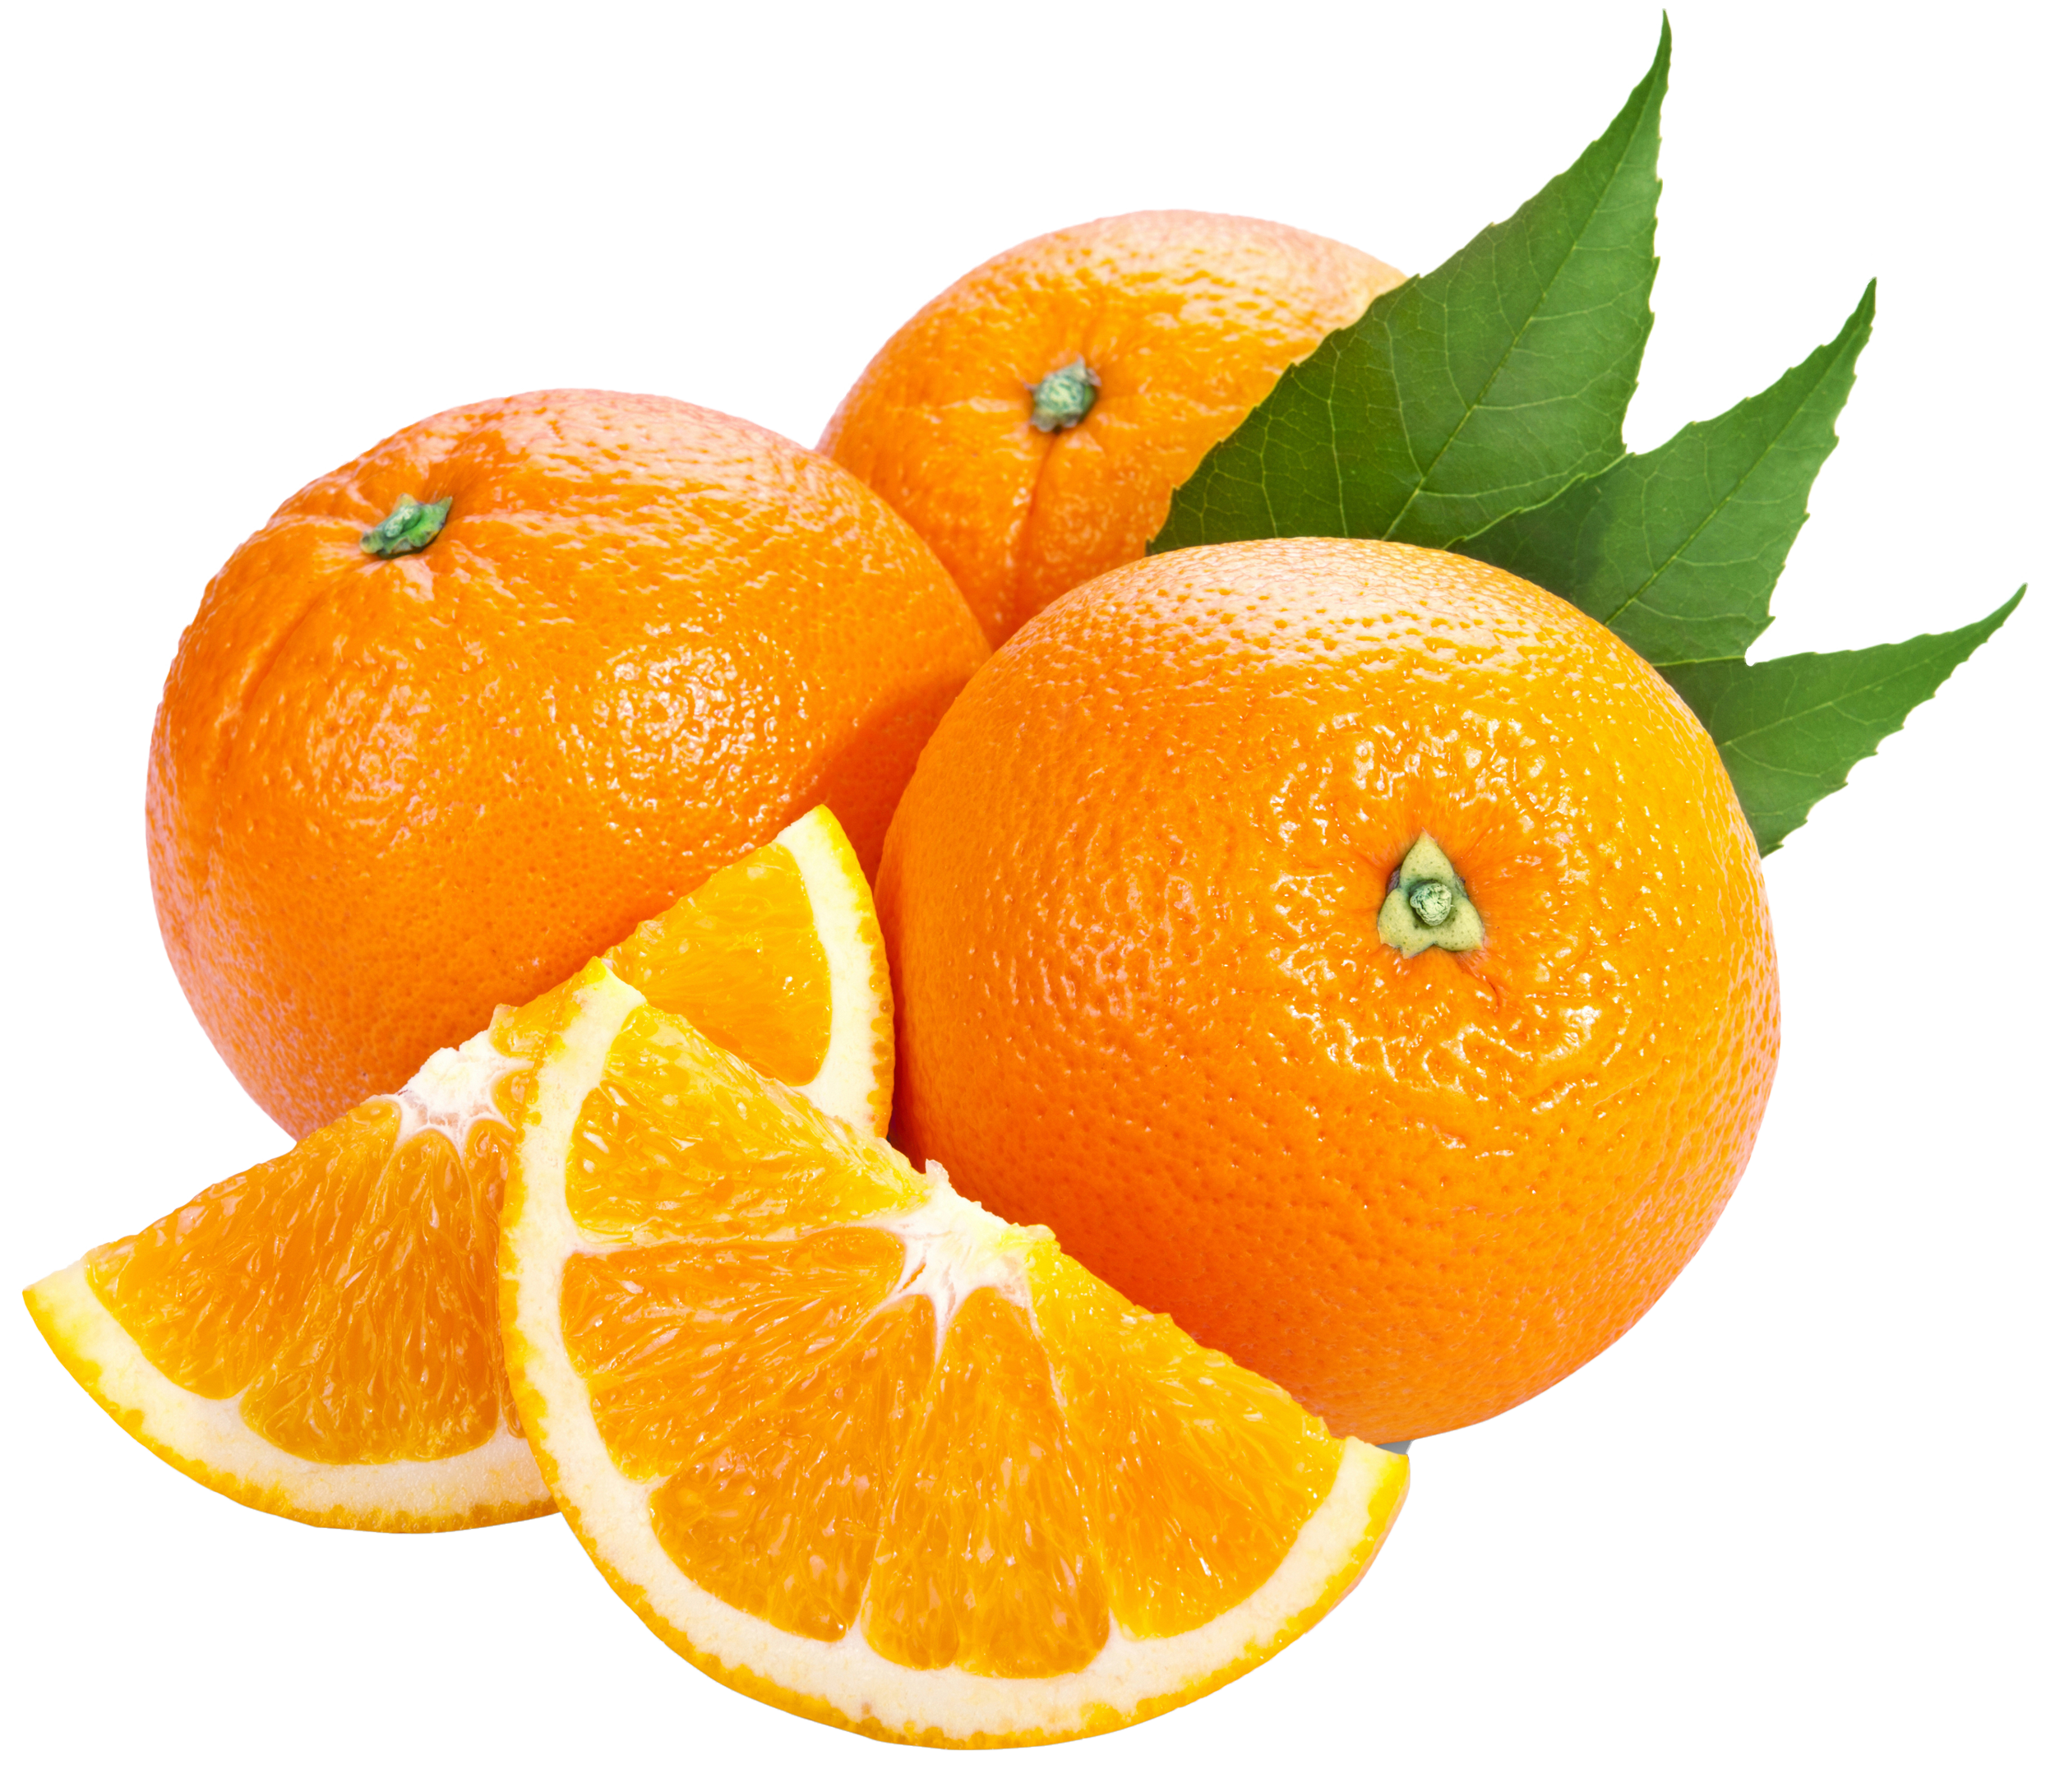 Gallery free clipart picture fruit png bananas free png cli - Large Oranges Png Clipart